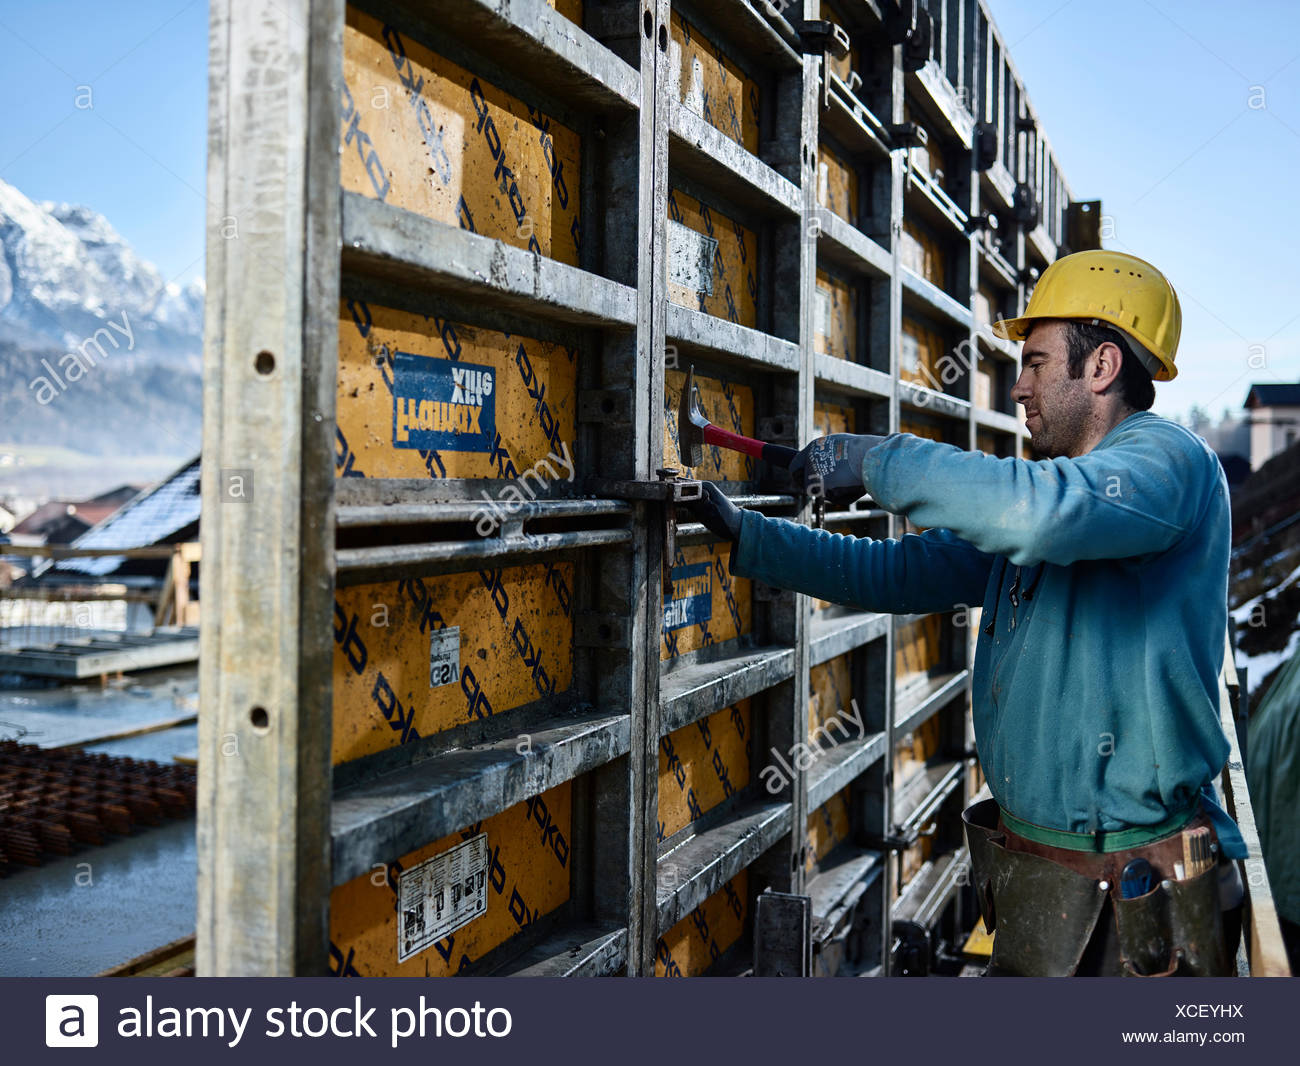 Construction worker hitting connecting element with hammer, shuttering wall, Innsbruck Land, Tyrol, Austria Stock Photo